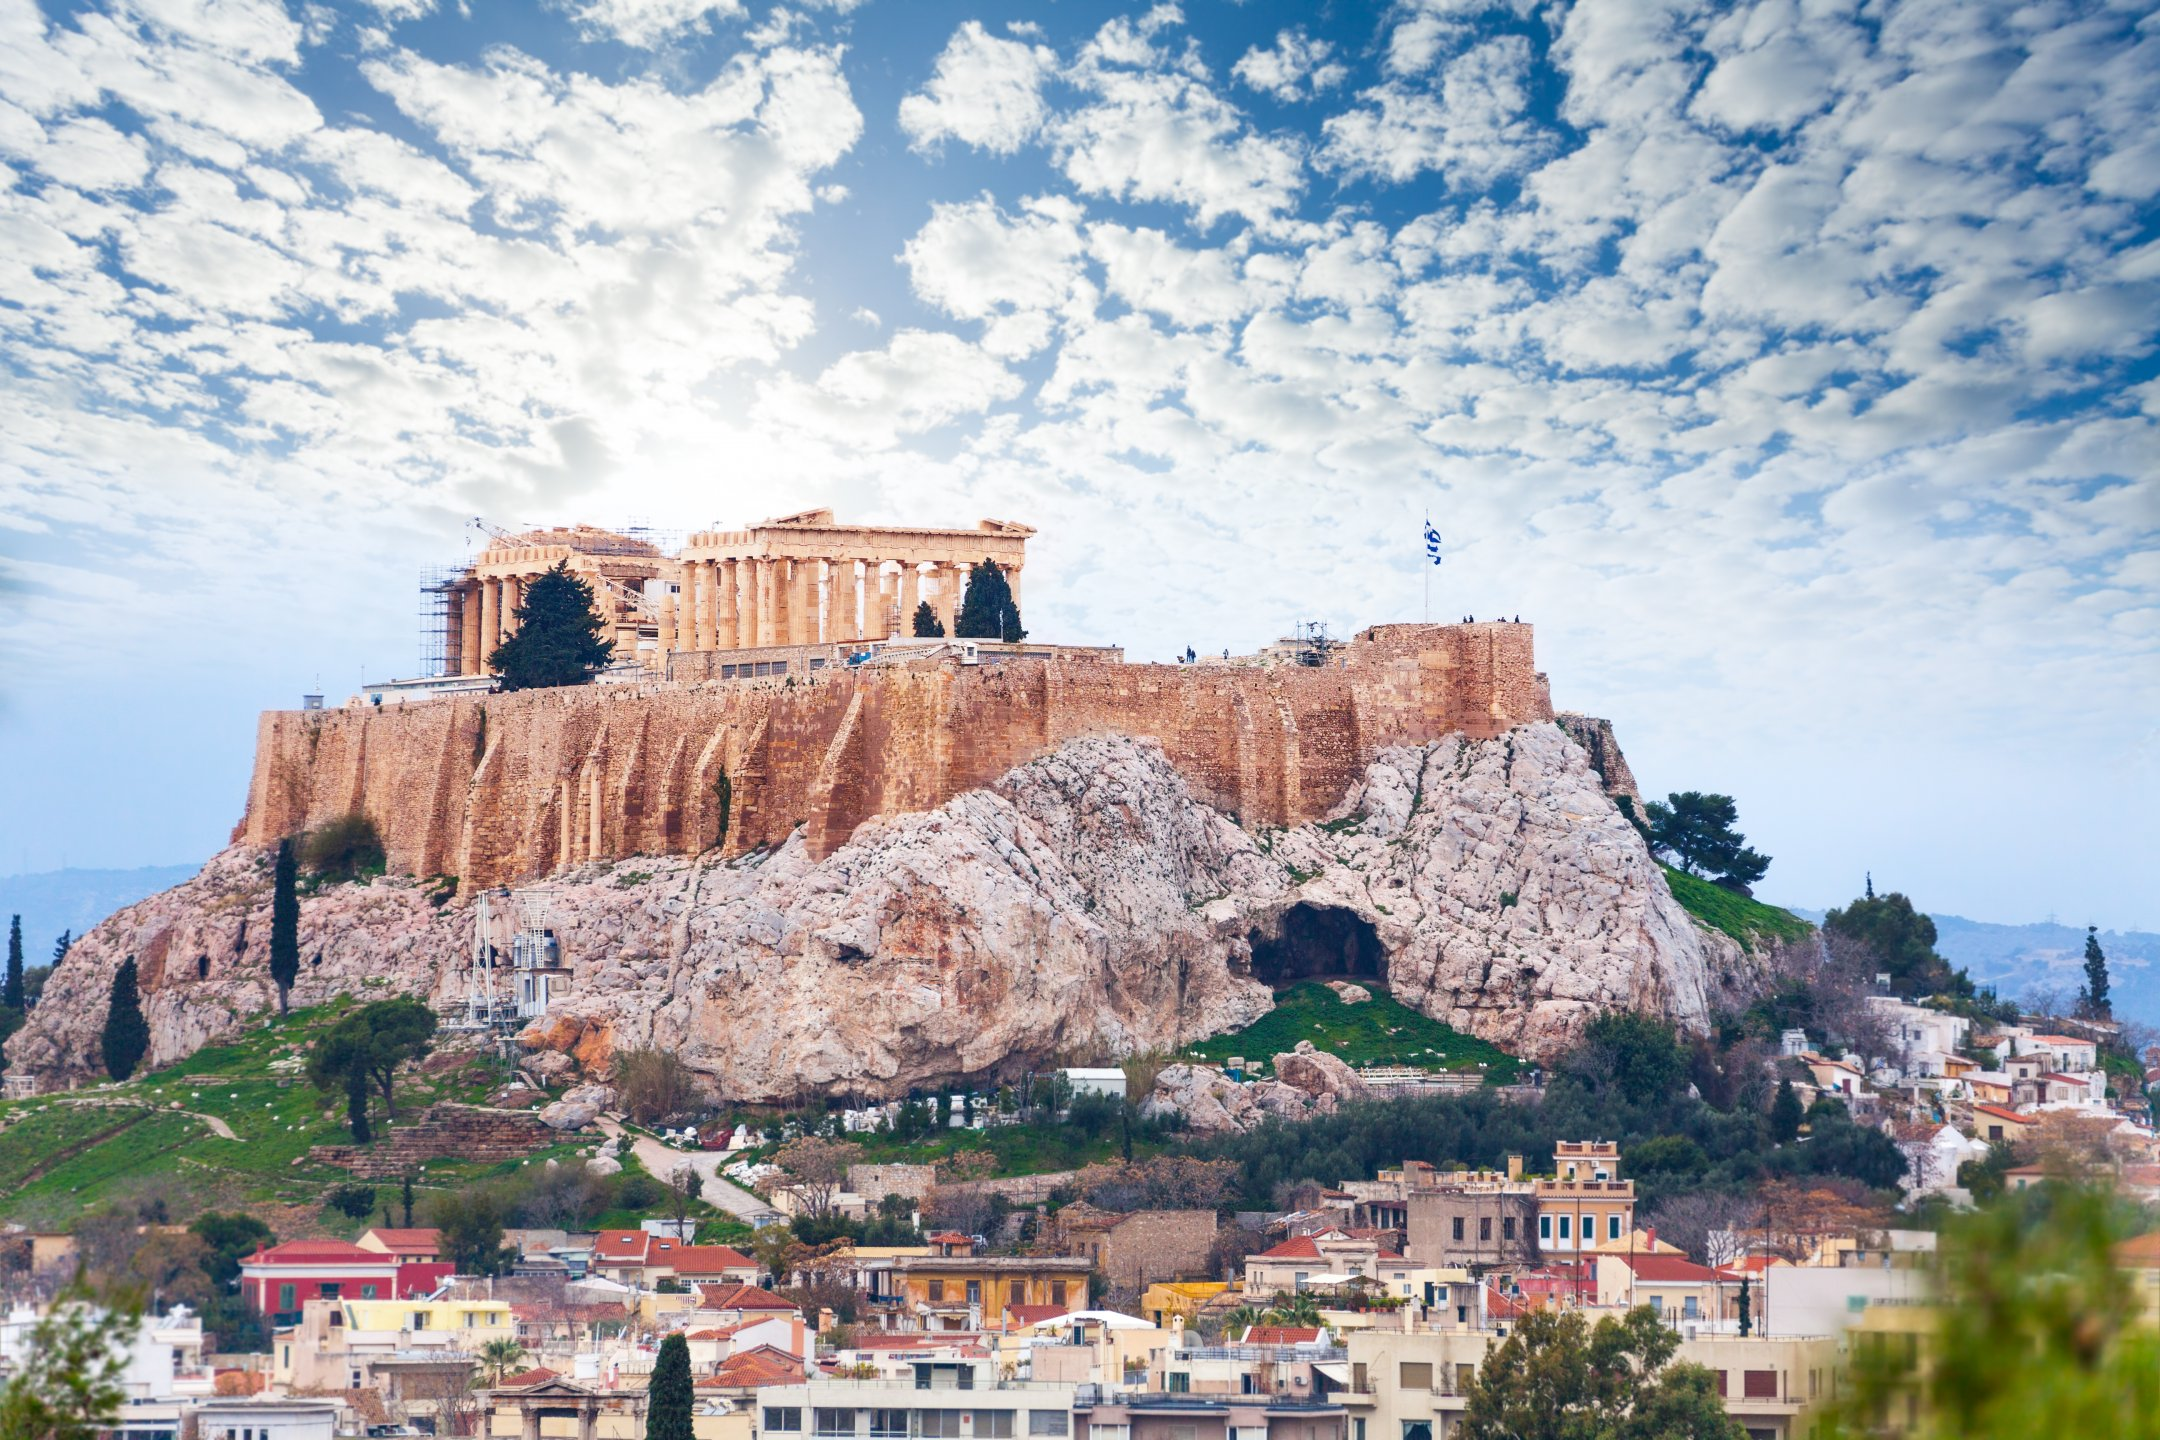 Parthenon of Acropolis in Athens, Greece